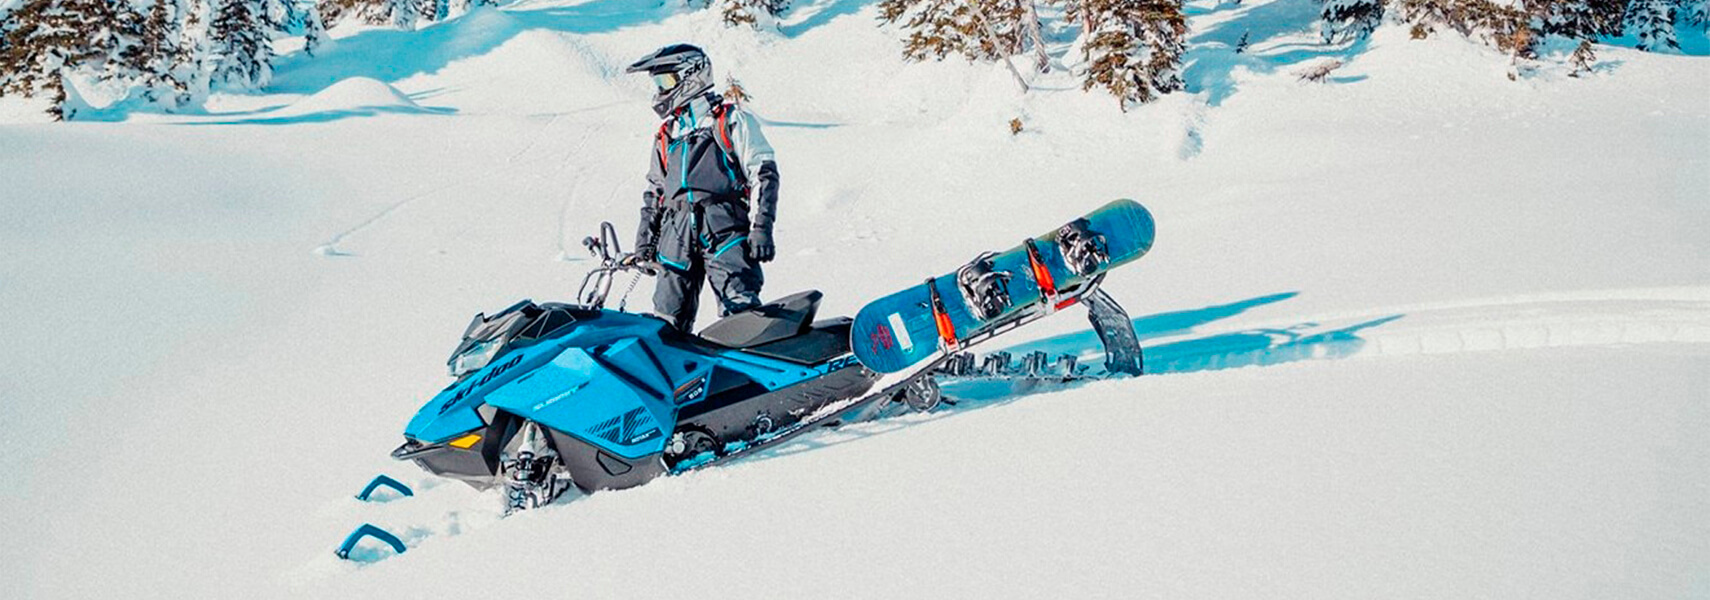 SKI-DOO - 2020 Summit X with Expert package